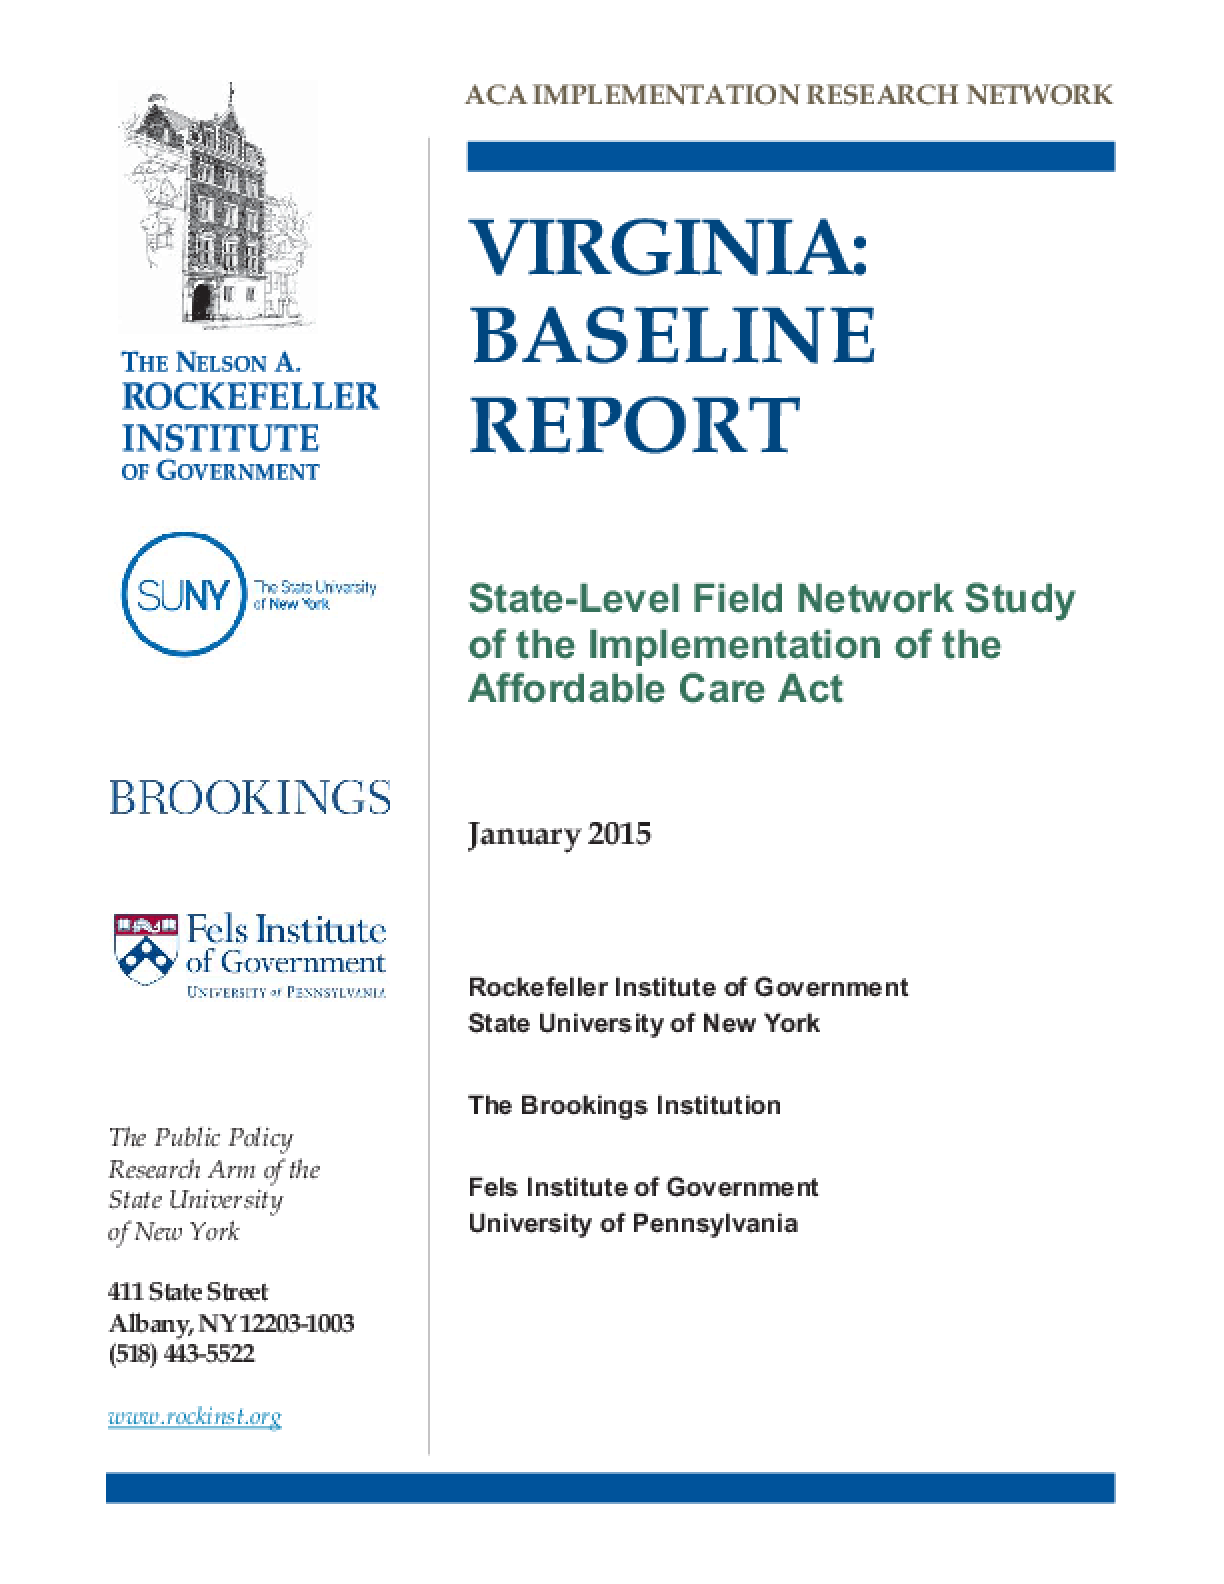 Virginia: Baseline Report - State Level Field Network Study of the Implementation of the Affordable Care Act